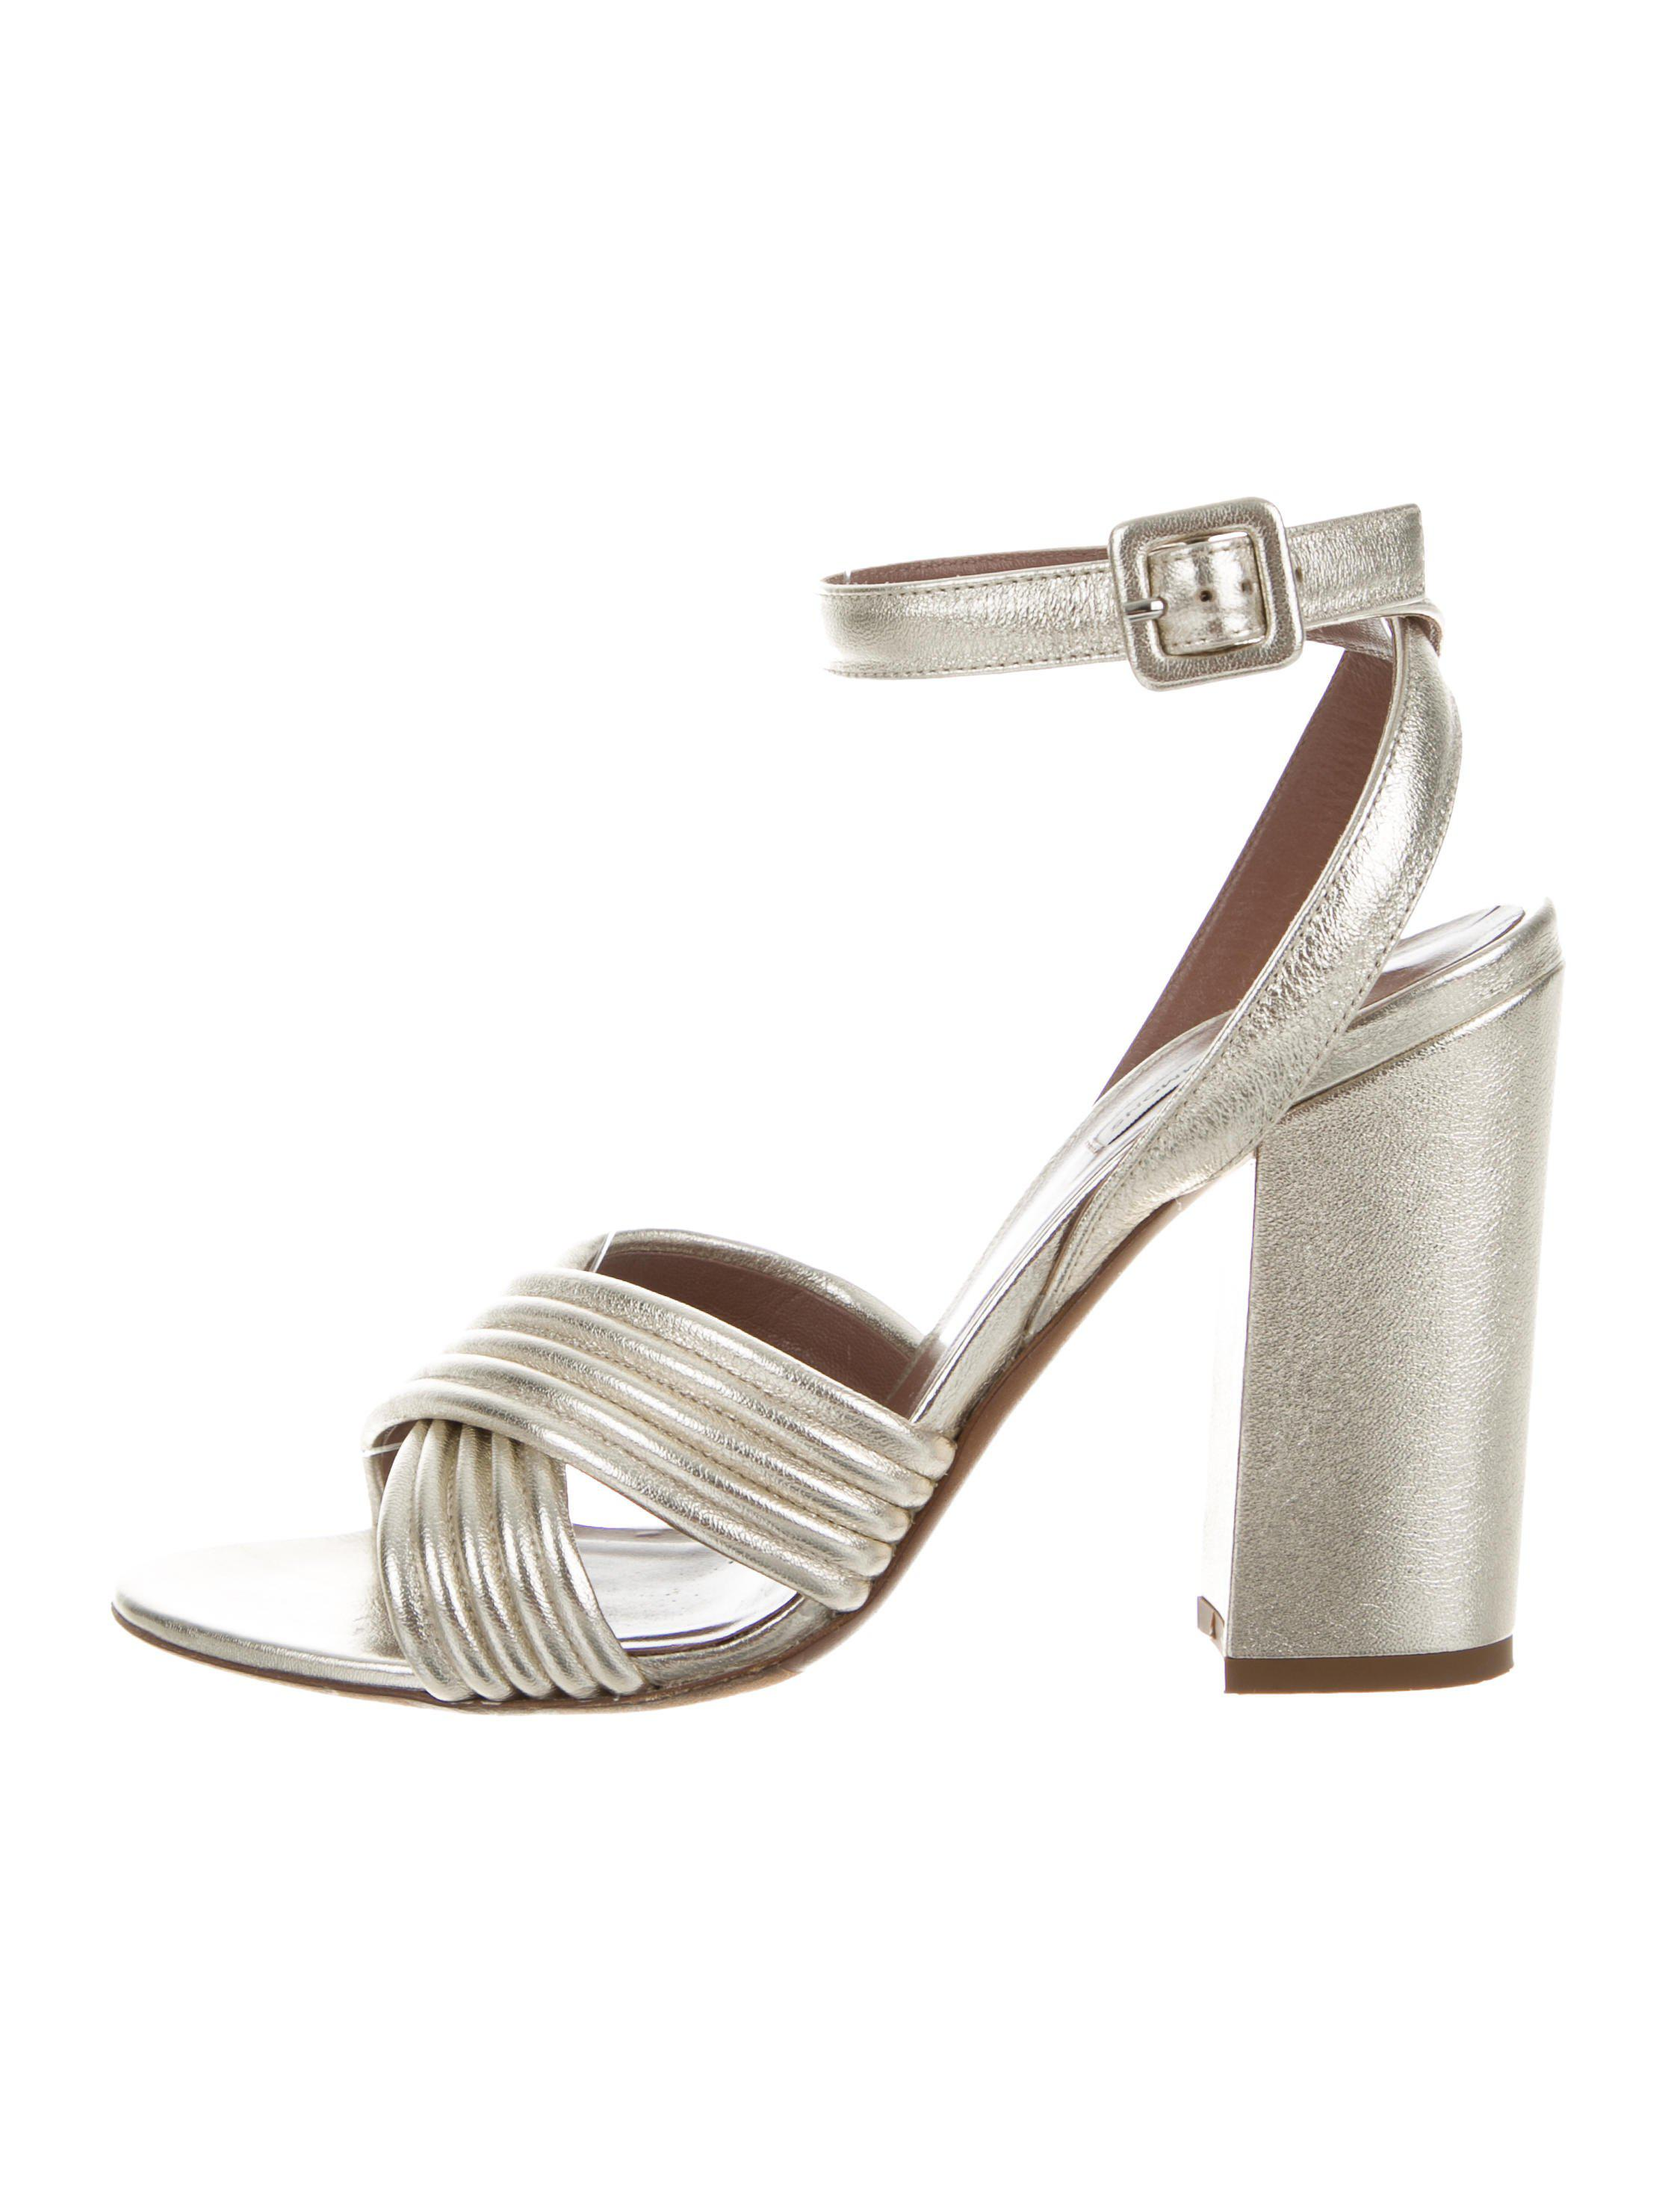 0d56b3e0faf072 Lyst - Tabitha Simmons Ankle Strap Sandals Silver in Metallic